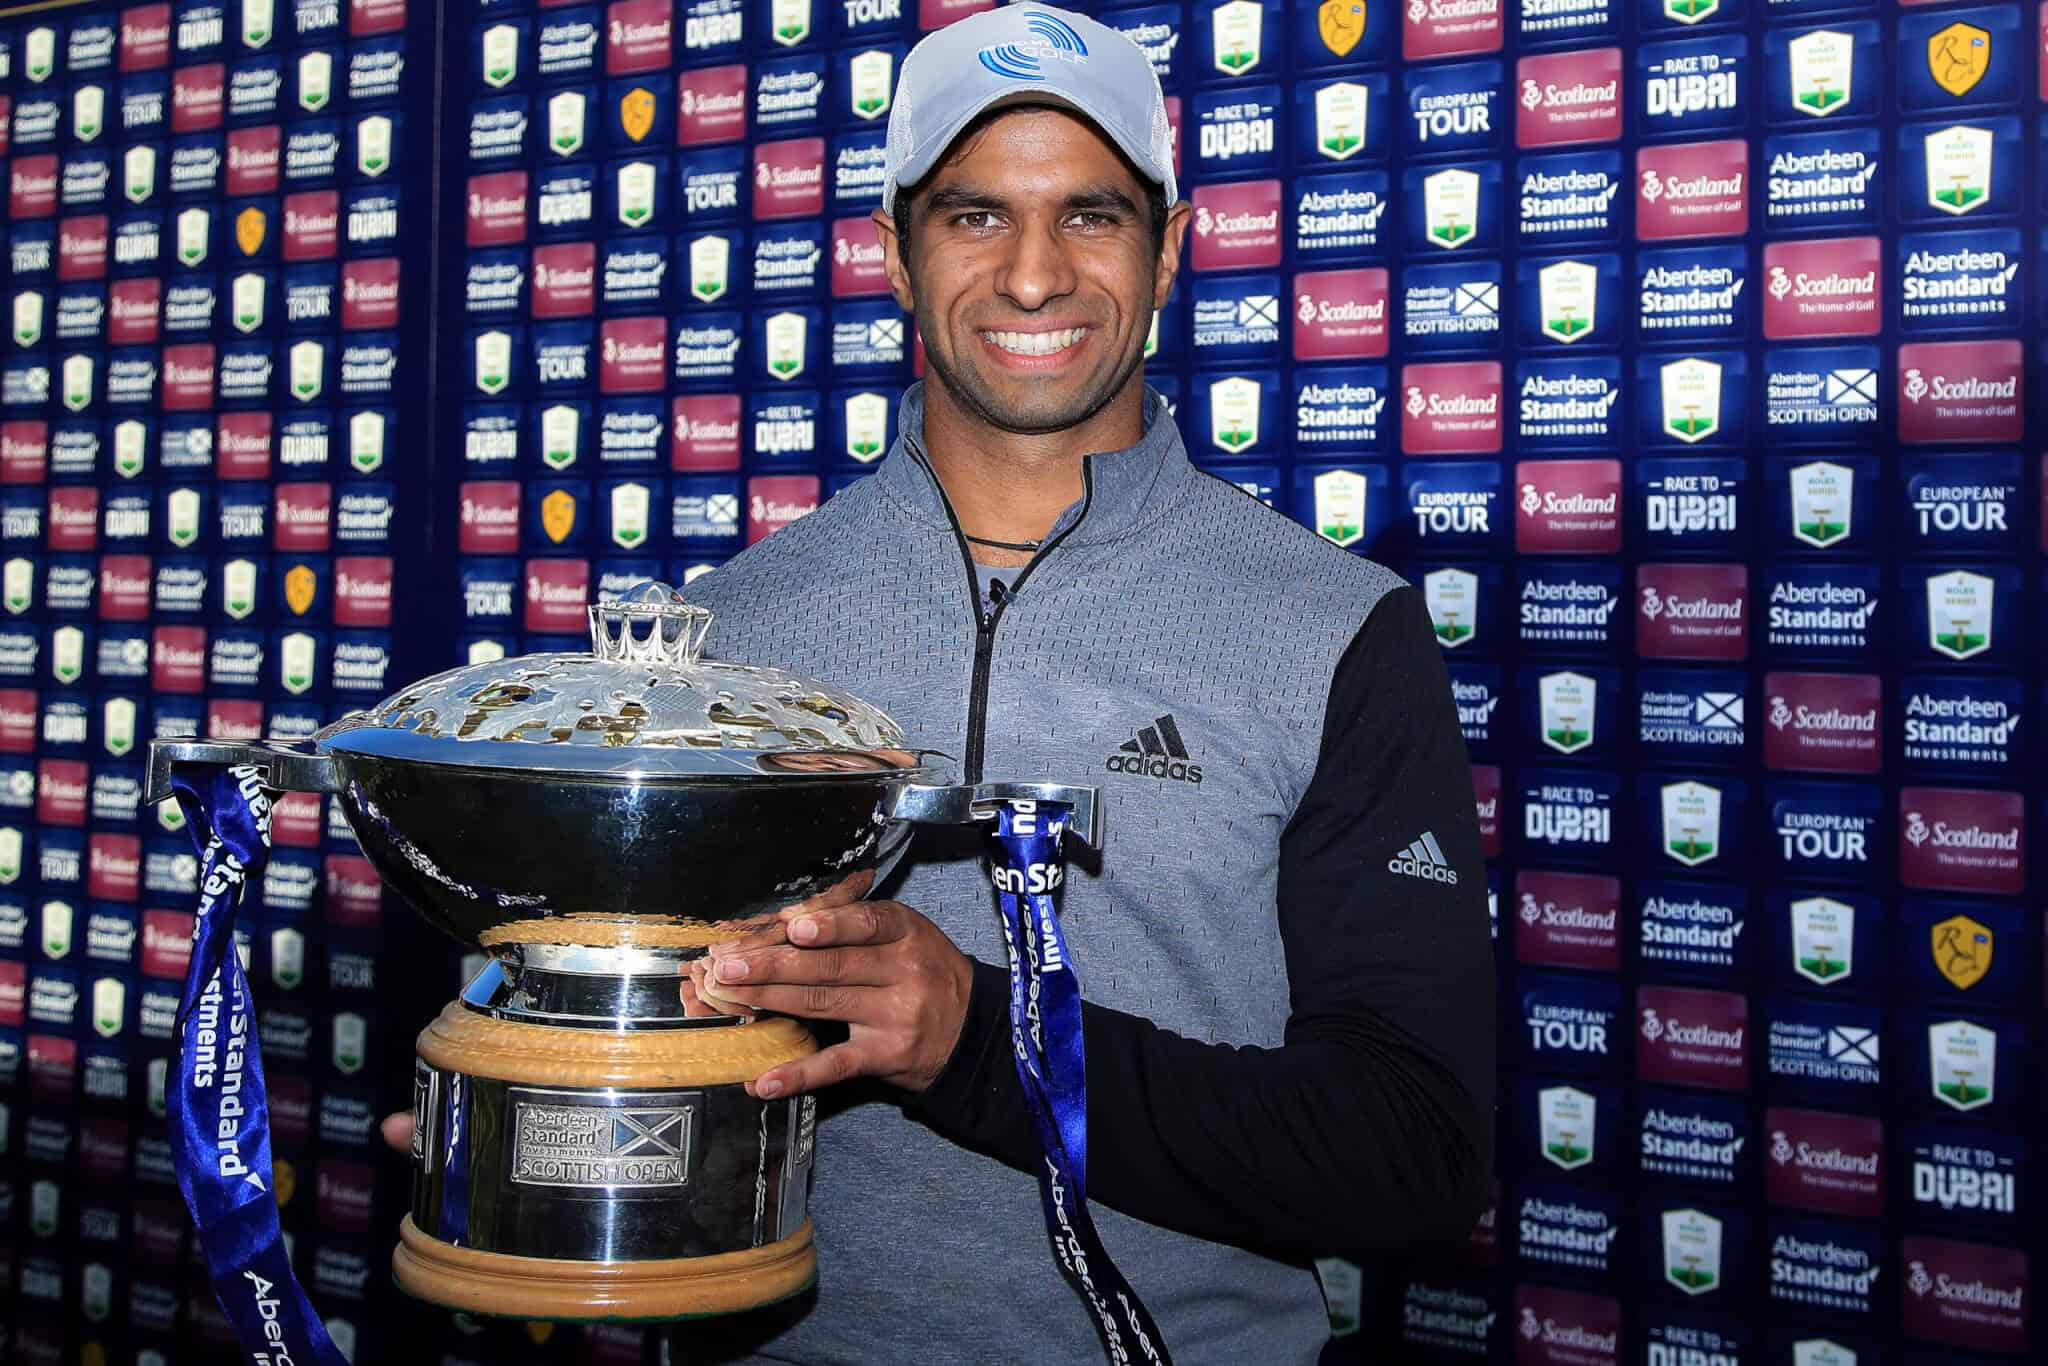 NORTH BERWICK, SCOTLAND - OCTOBER 04: Aaron Rai of England poses with the trophy after beating Tommy Fleetwood of England in a one hole play-off to win the Aberdeen Standard Investments Scottish Open at The Renaissance Club on October 04, 2020 in North Berwick, Scotland. (Photo by Andrew Redington/Getty Images)